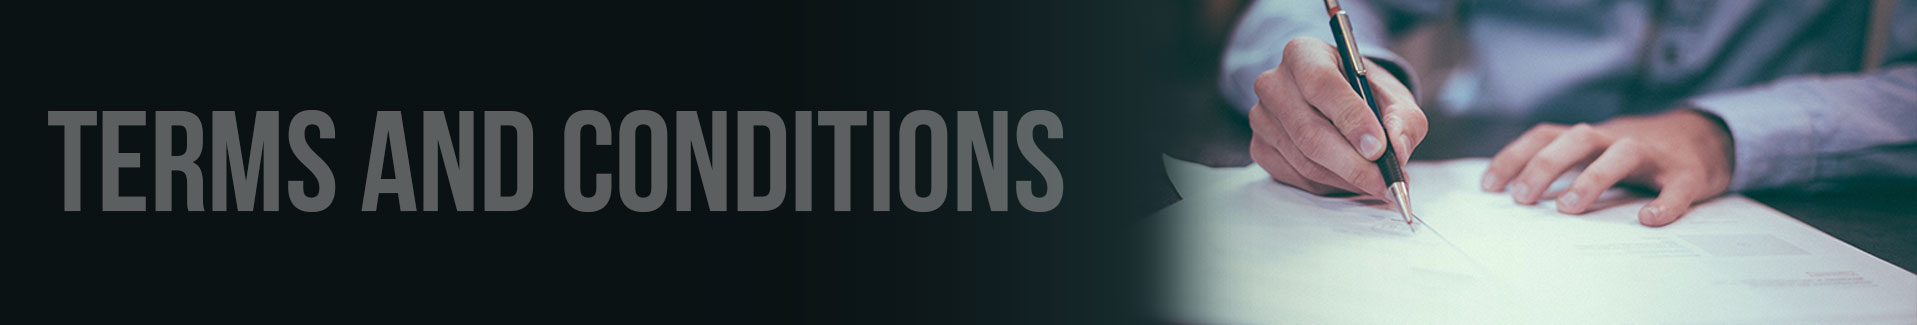 terms-&-conditions-banner